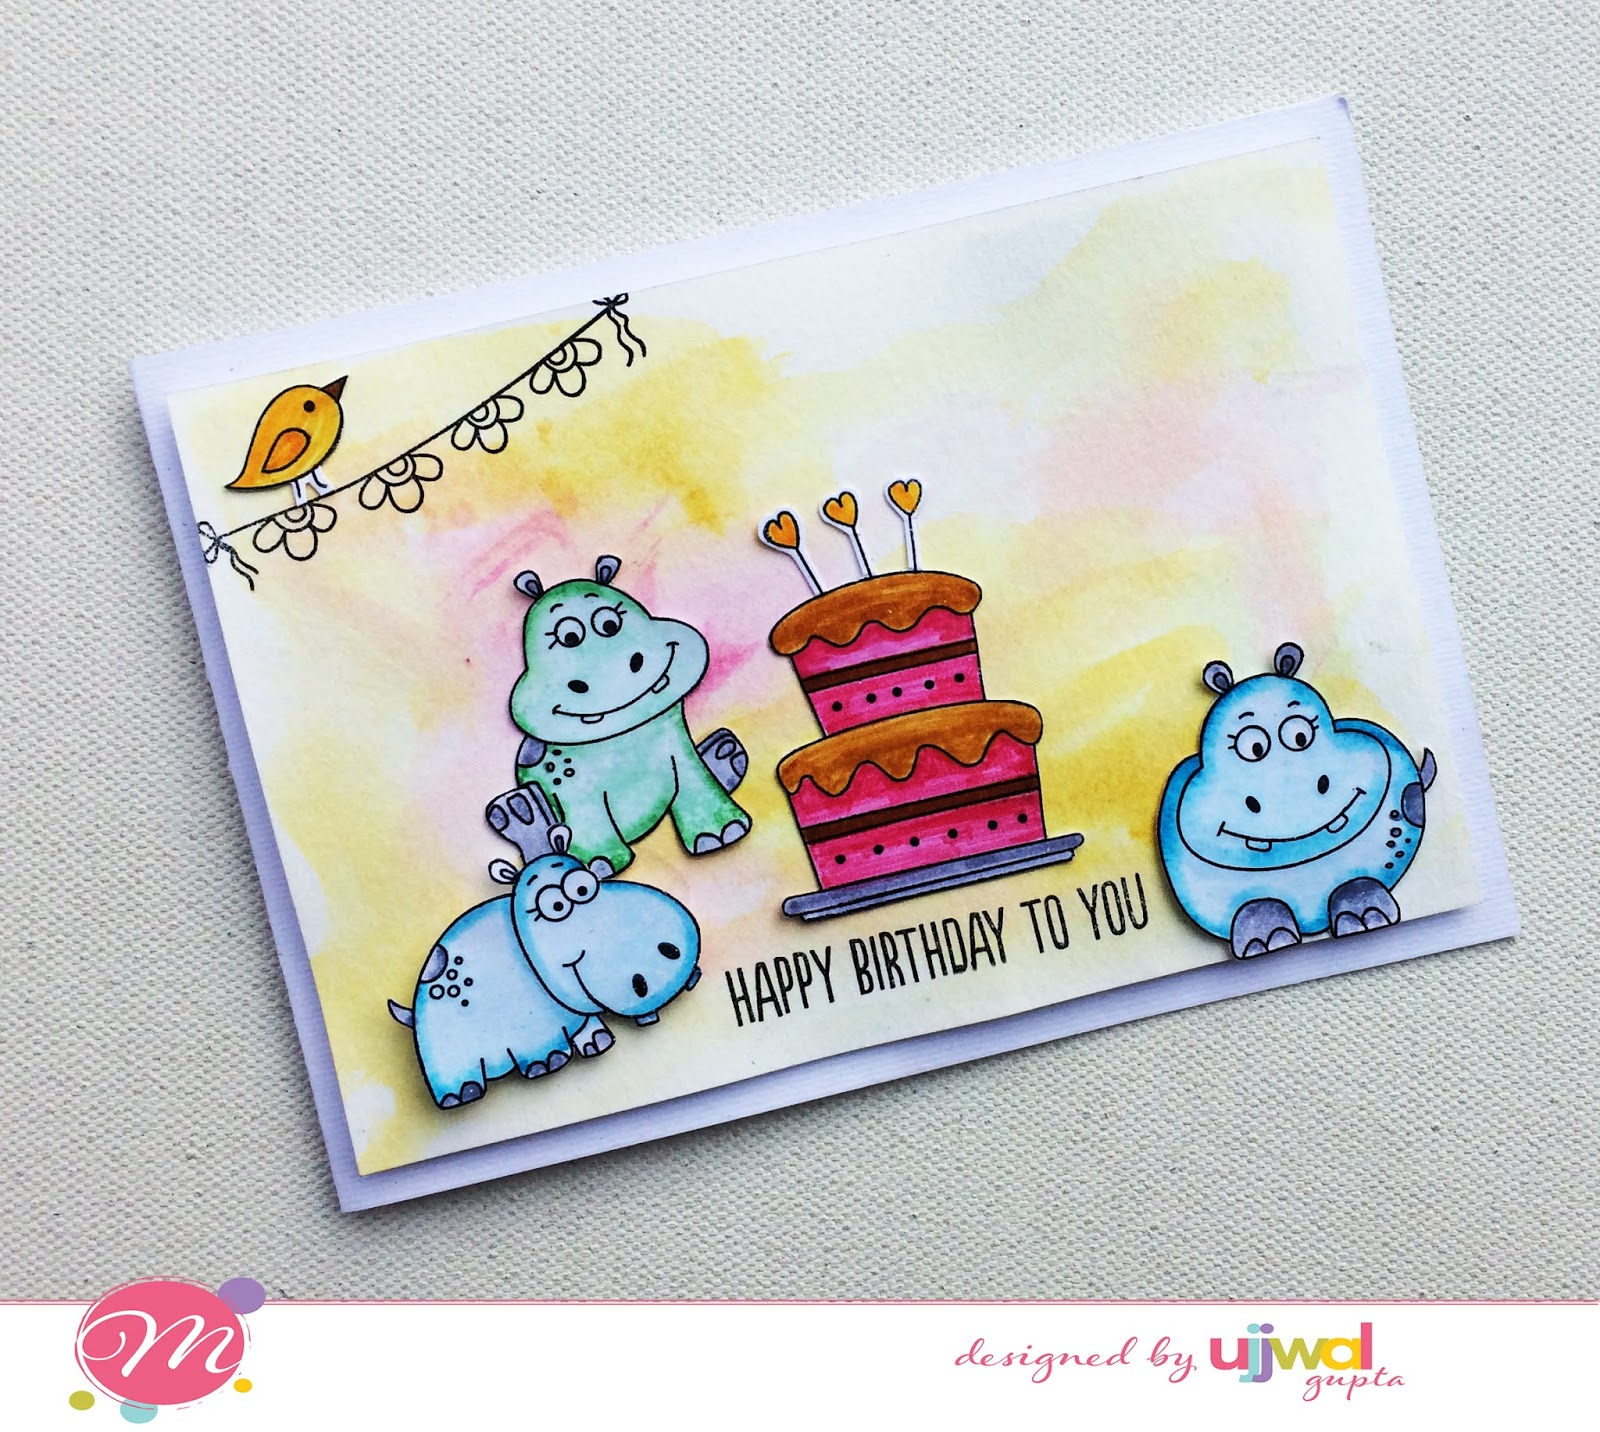 Mudra craft stamps hippo birthday card i stamped all the different hippos bird and the cake on white cardstock and colored them using tombow markers and faber castell markers bookmarktalkfo Image collections